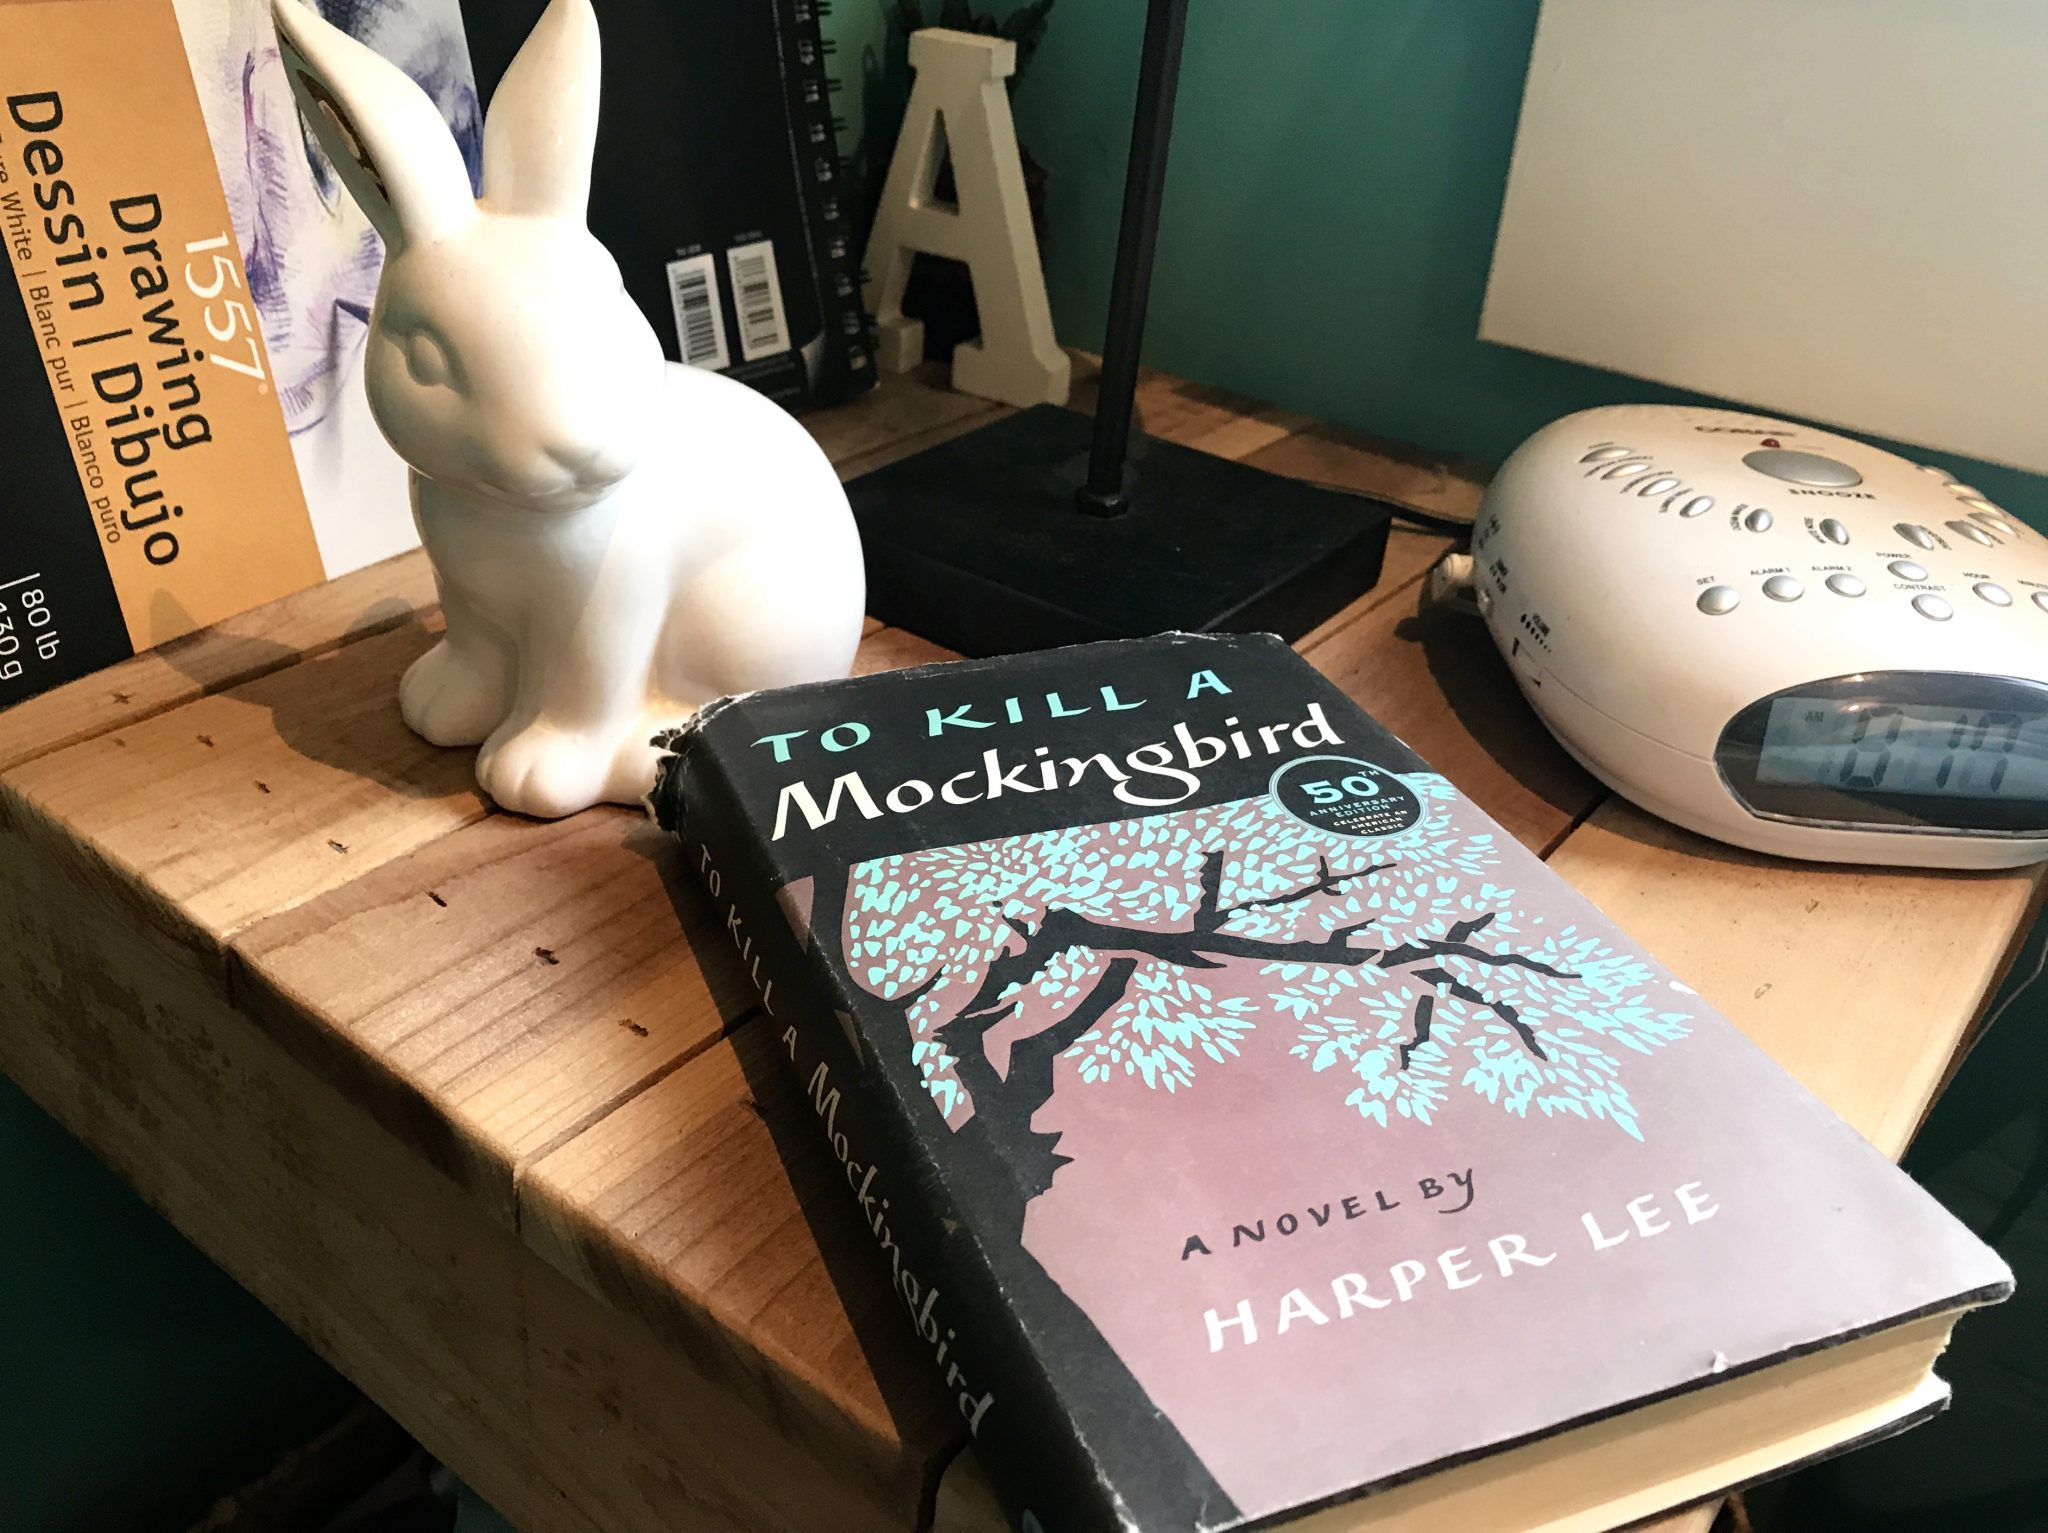 bedside table with To Kill a Mockingbird